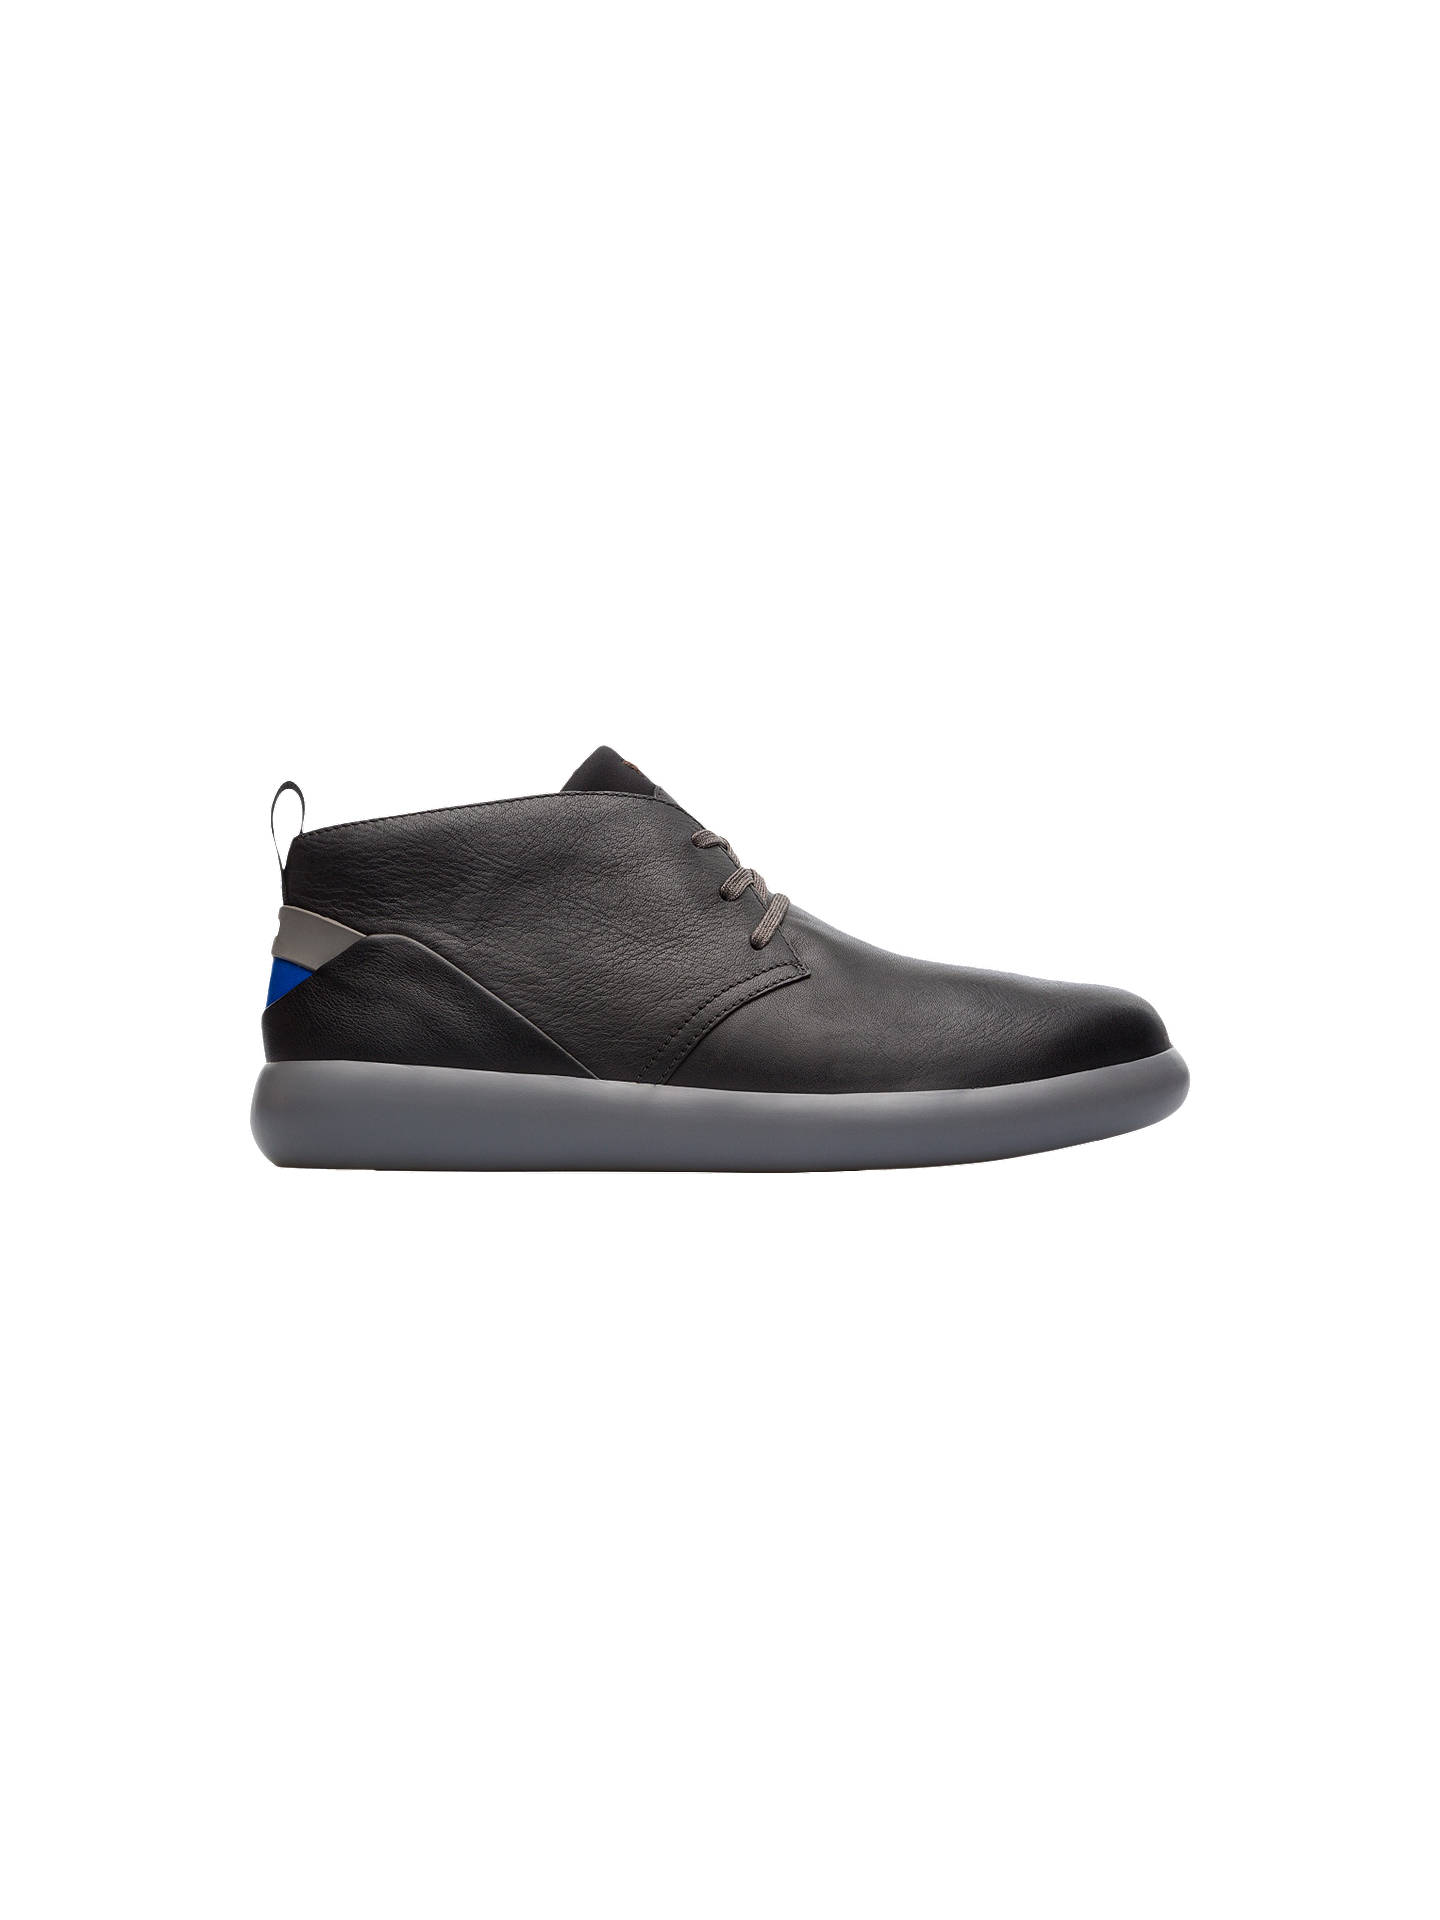 BuyCamper Pelotas Capsule XL Trainers, Black, 9 Online at johnlewis.com